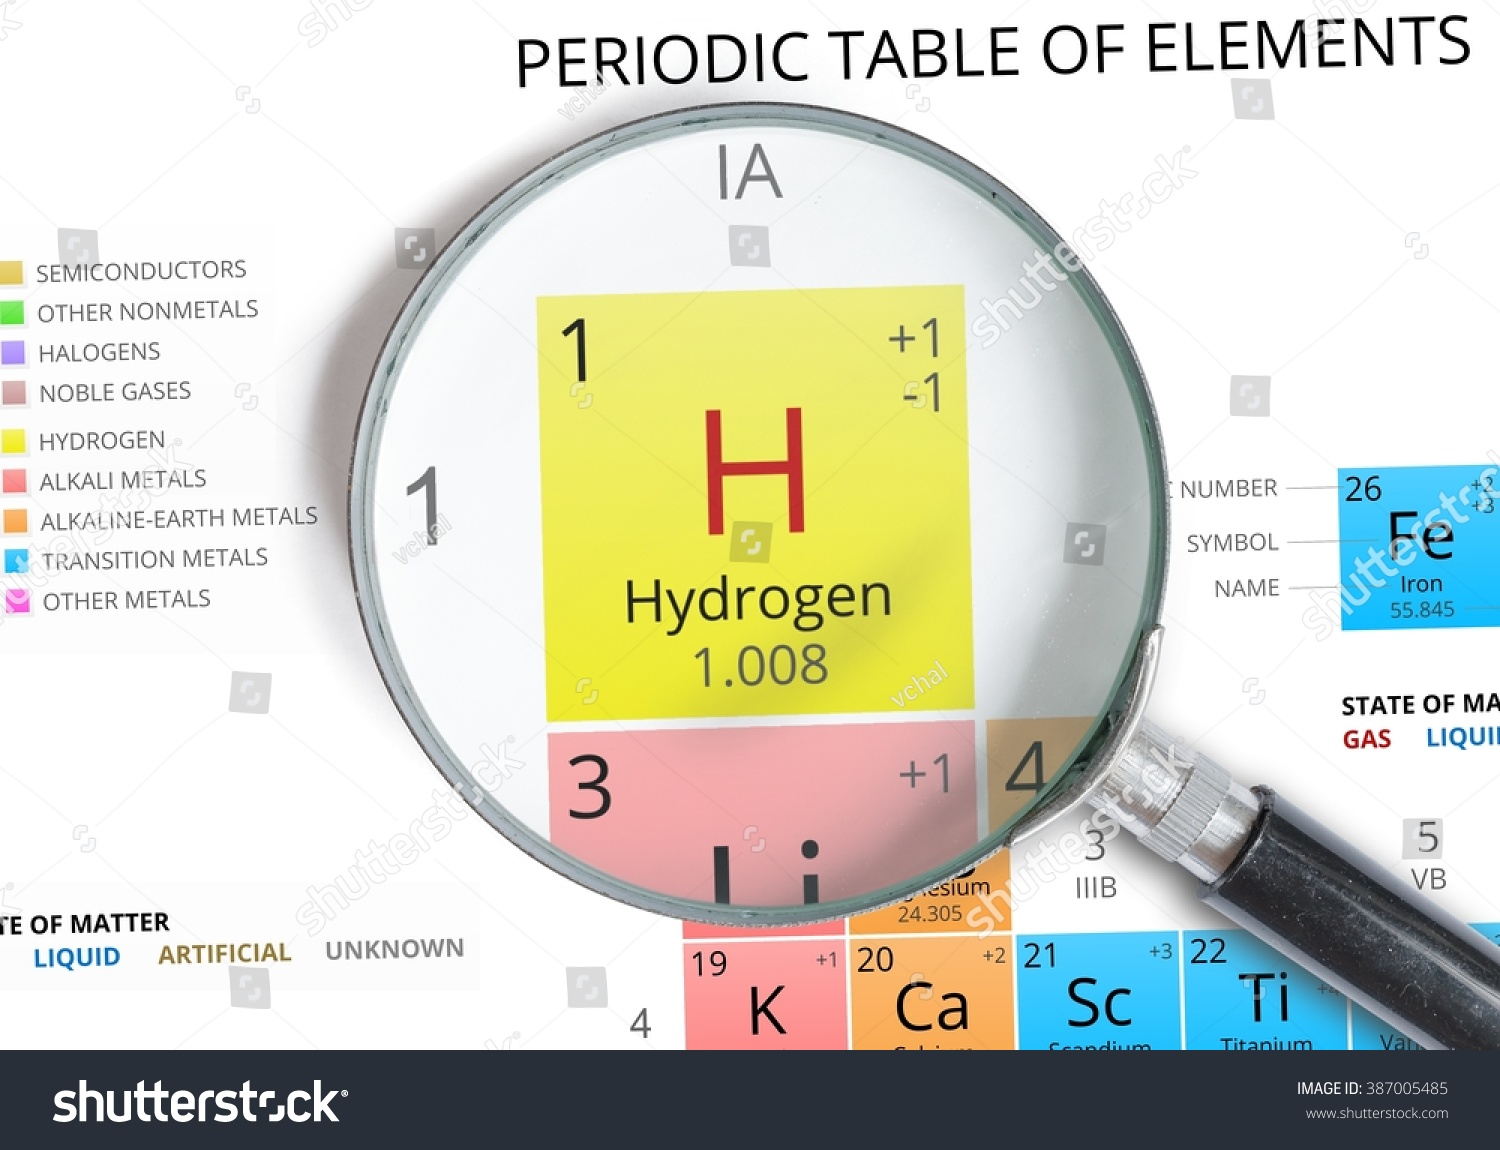 Hydrogen symbol h element periodic table stock photo 387005485 hydrogen symbol h element of the periodic table zoomed with magnifying glass urtaz Gallery